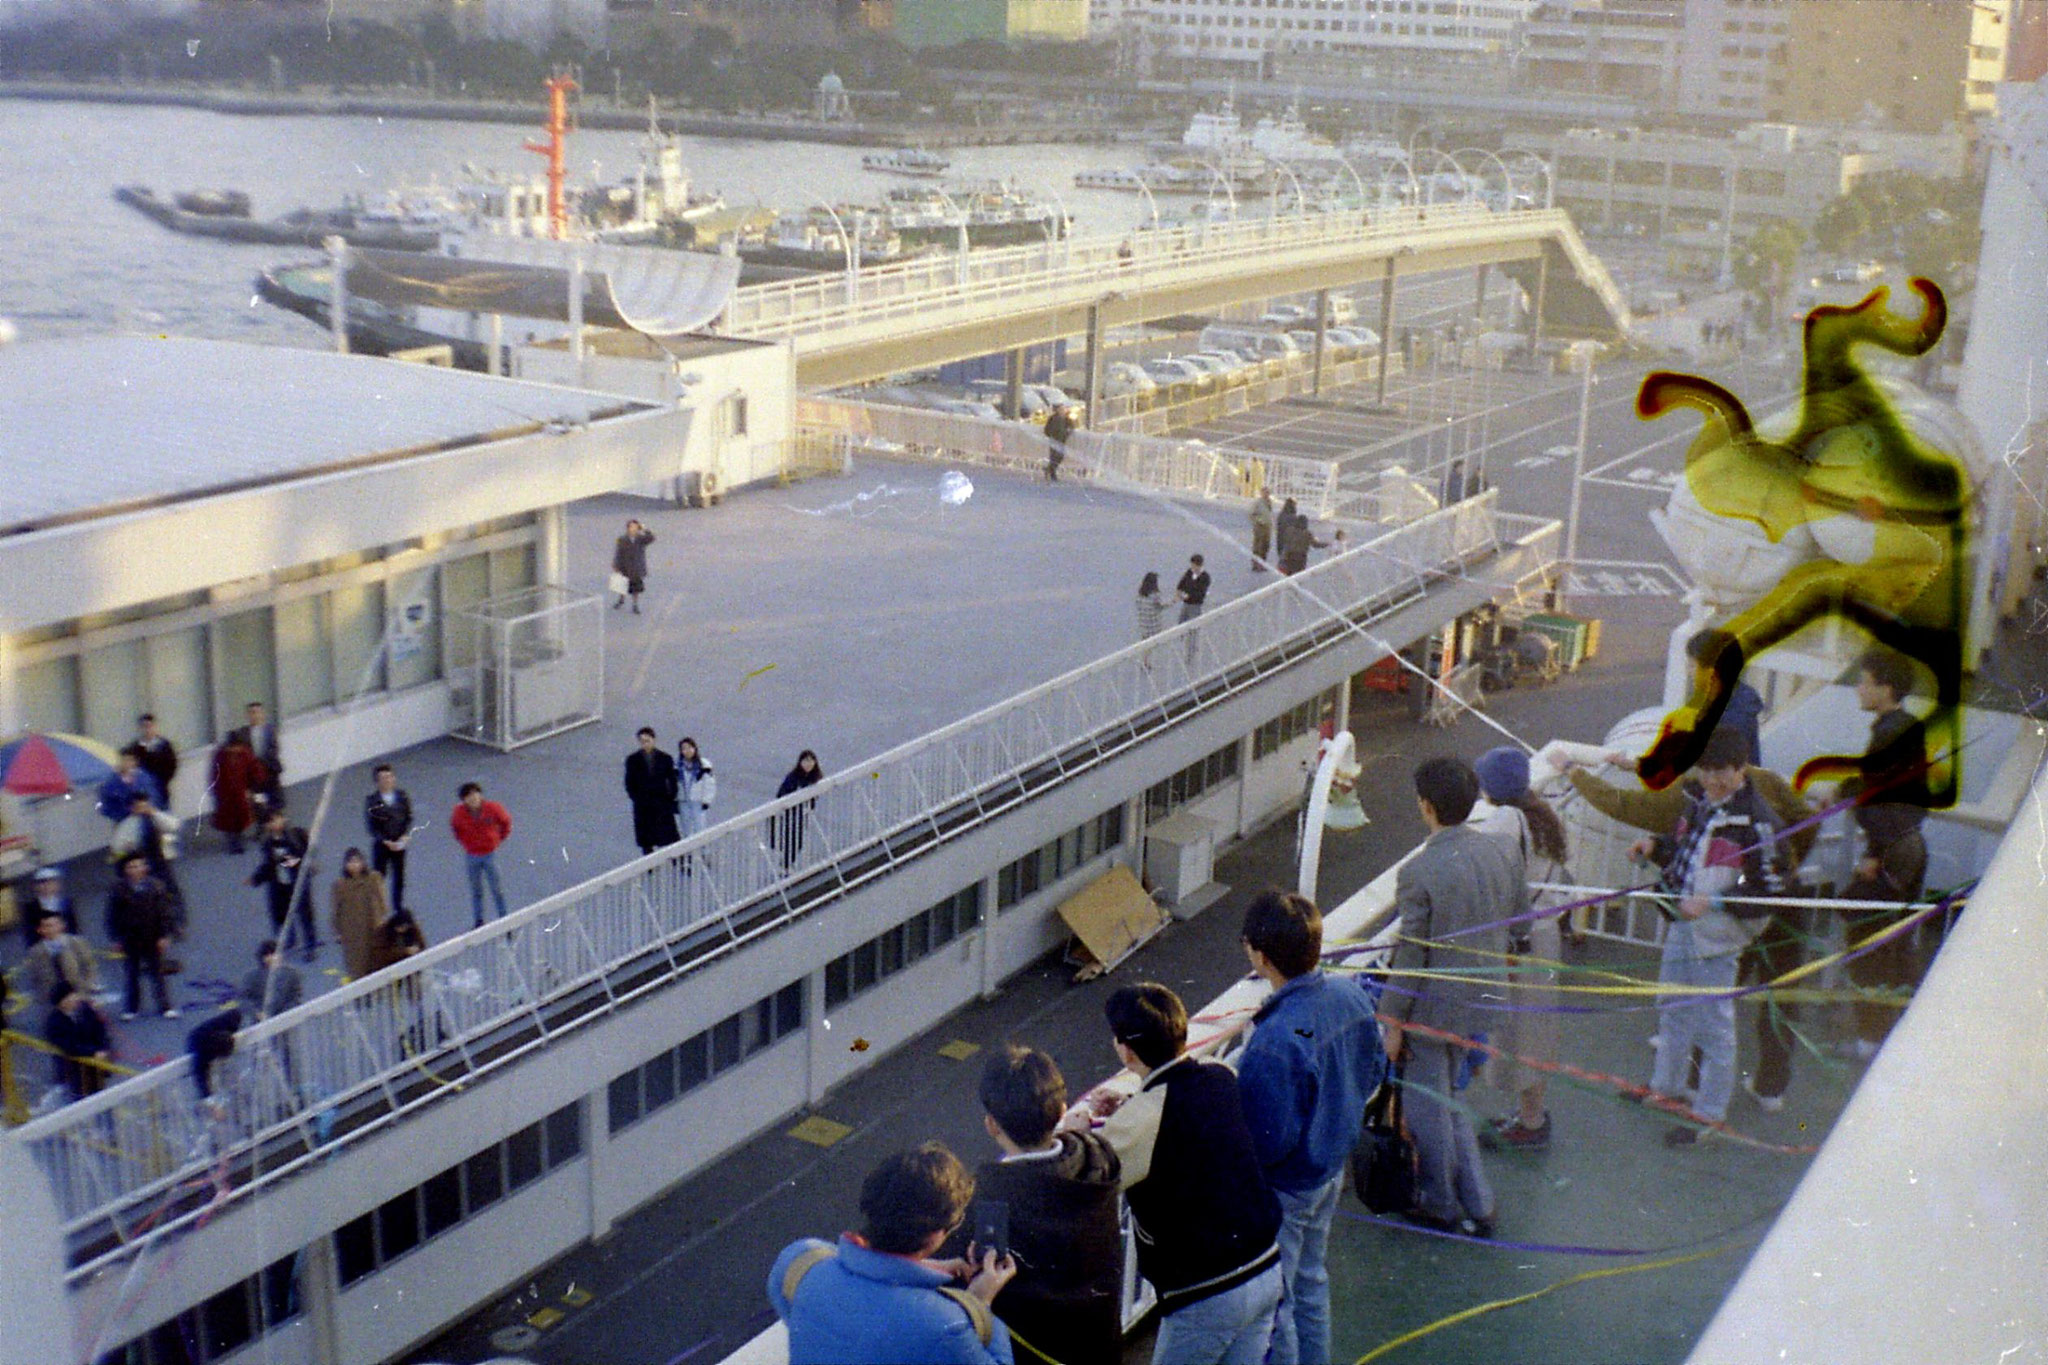 6/2/1989: 5: Yokohama quayside at New Year